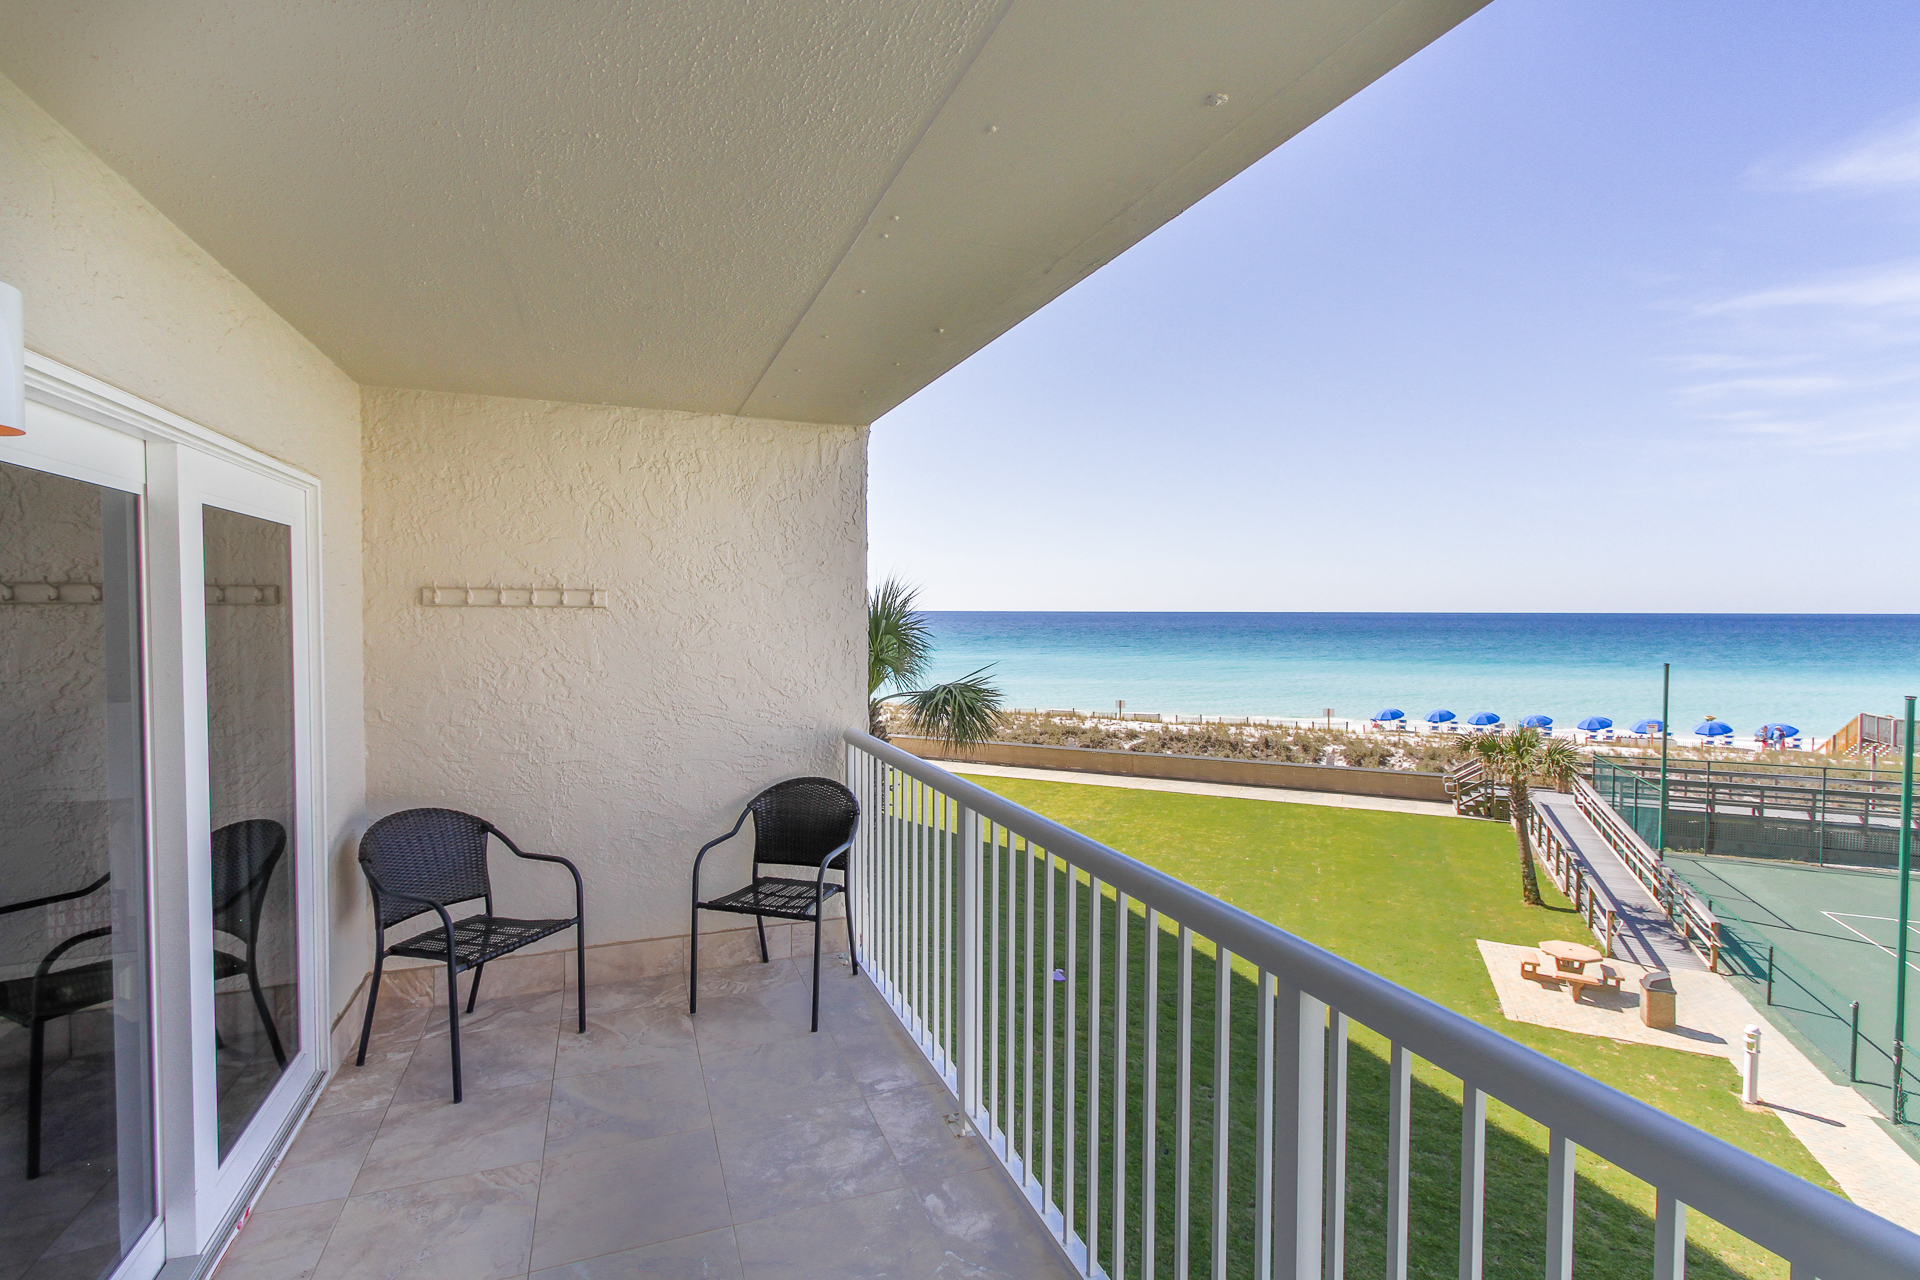 Holiday Surf & Racquet Club 319 Condo rental in Holiday Surf & Racquet Club in Destin Florida - #17